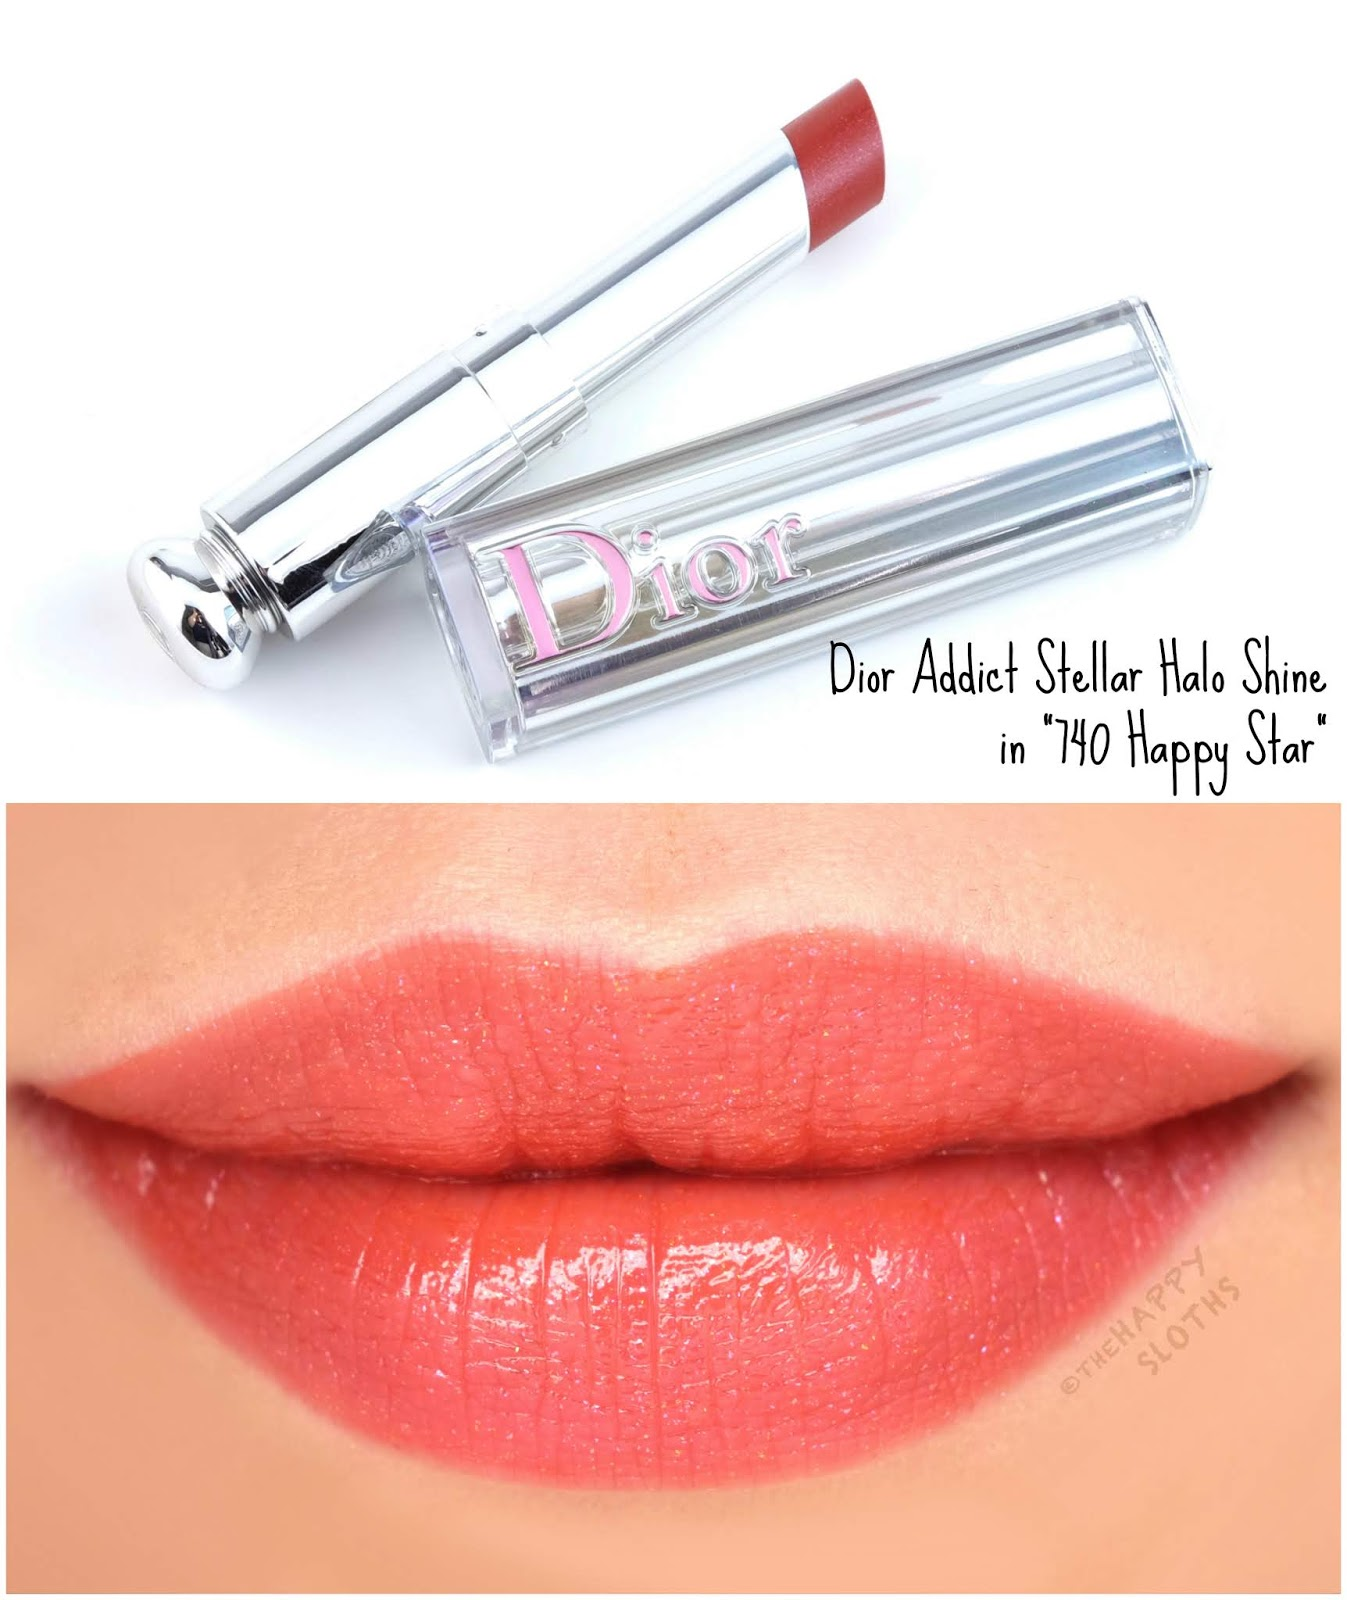 "Dior | Dior Addict Stellar Halo Shine Lipstick in ""740 Happy Star"": Review and Swatches"